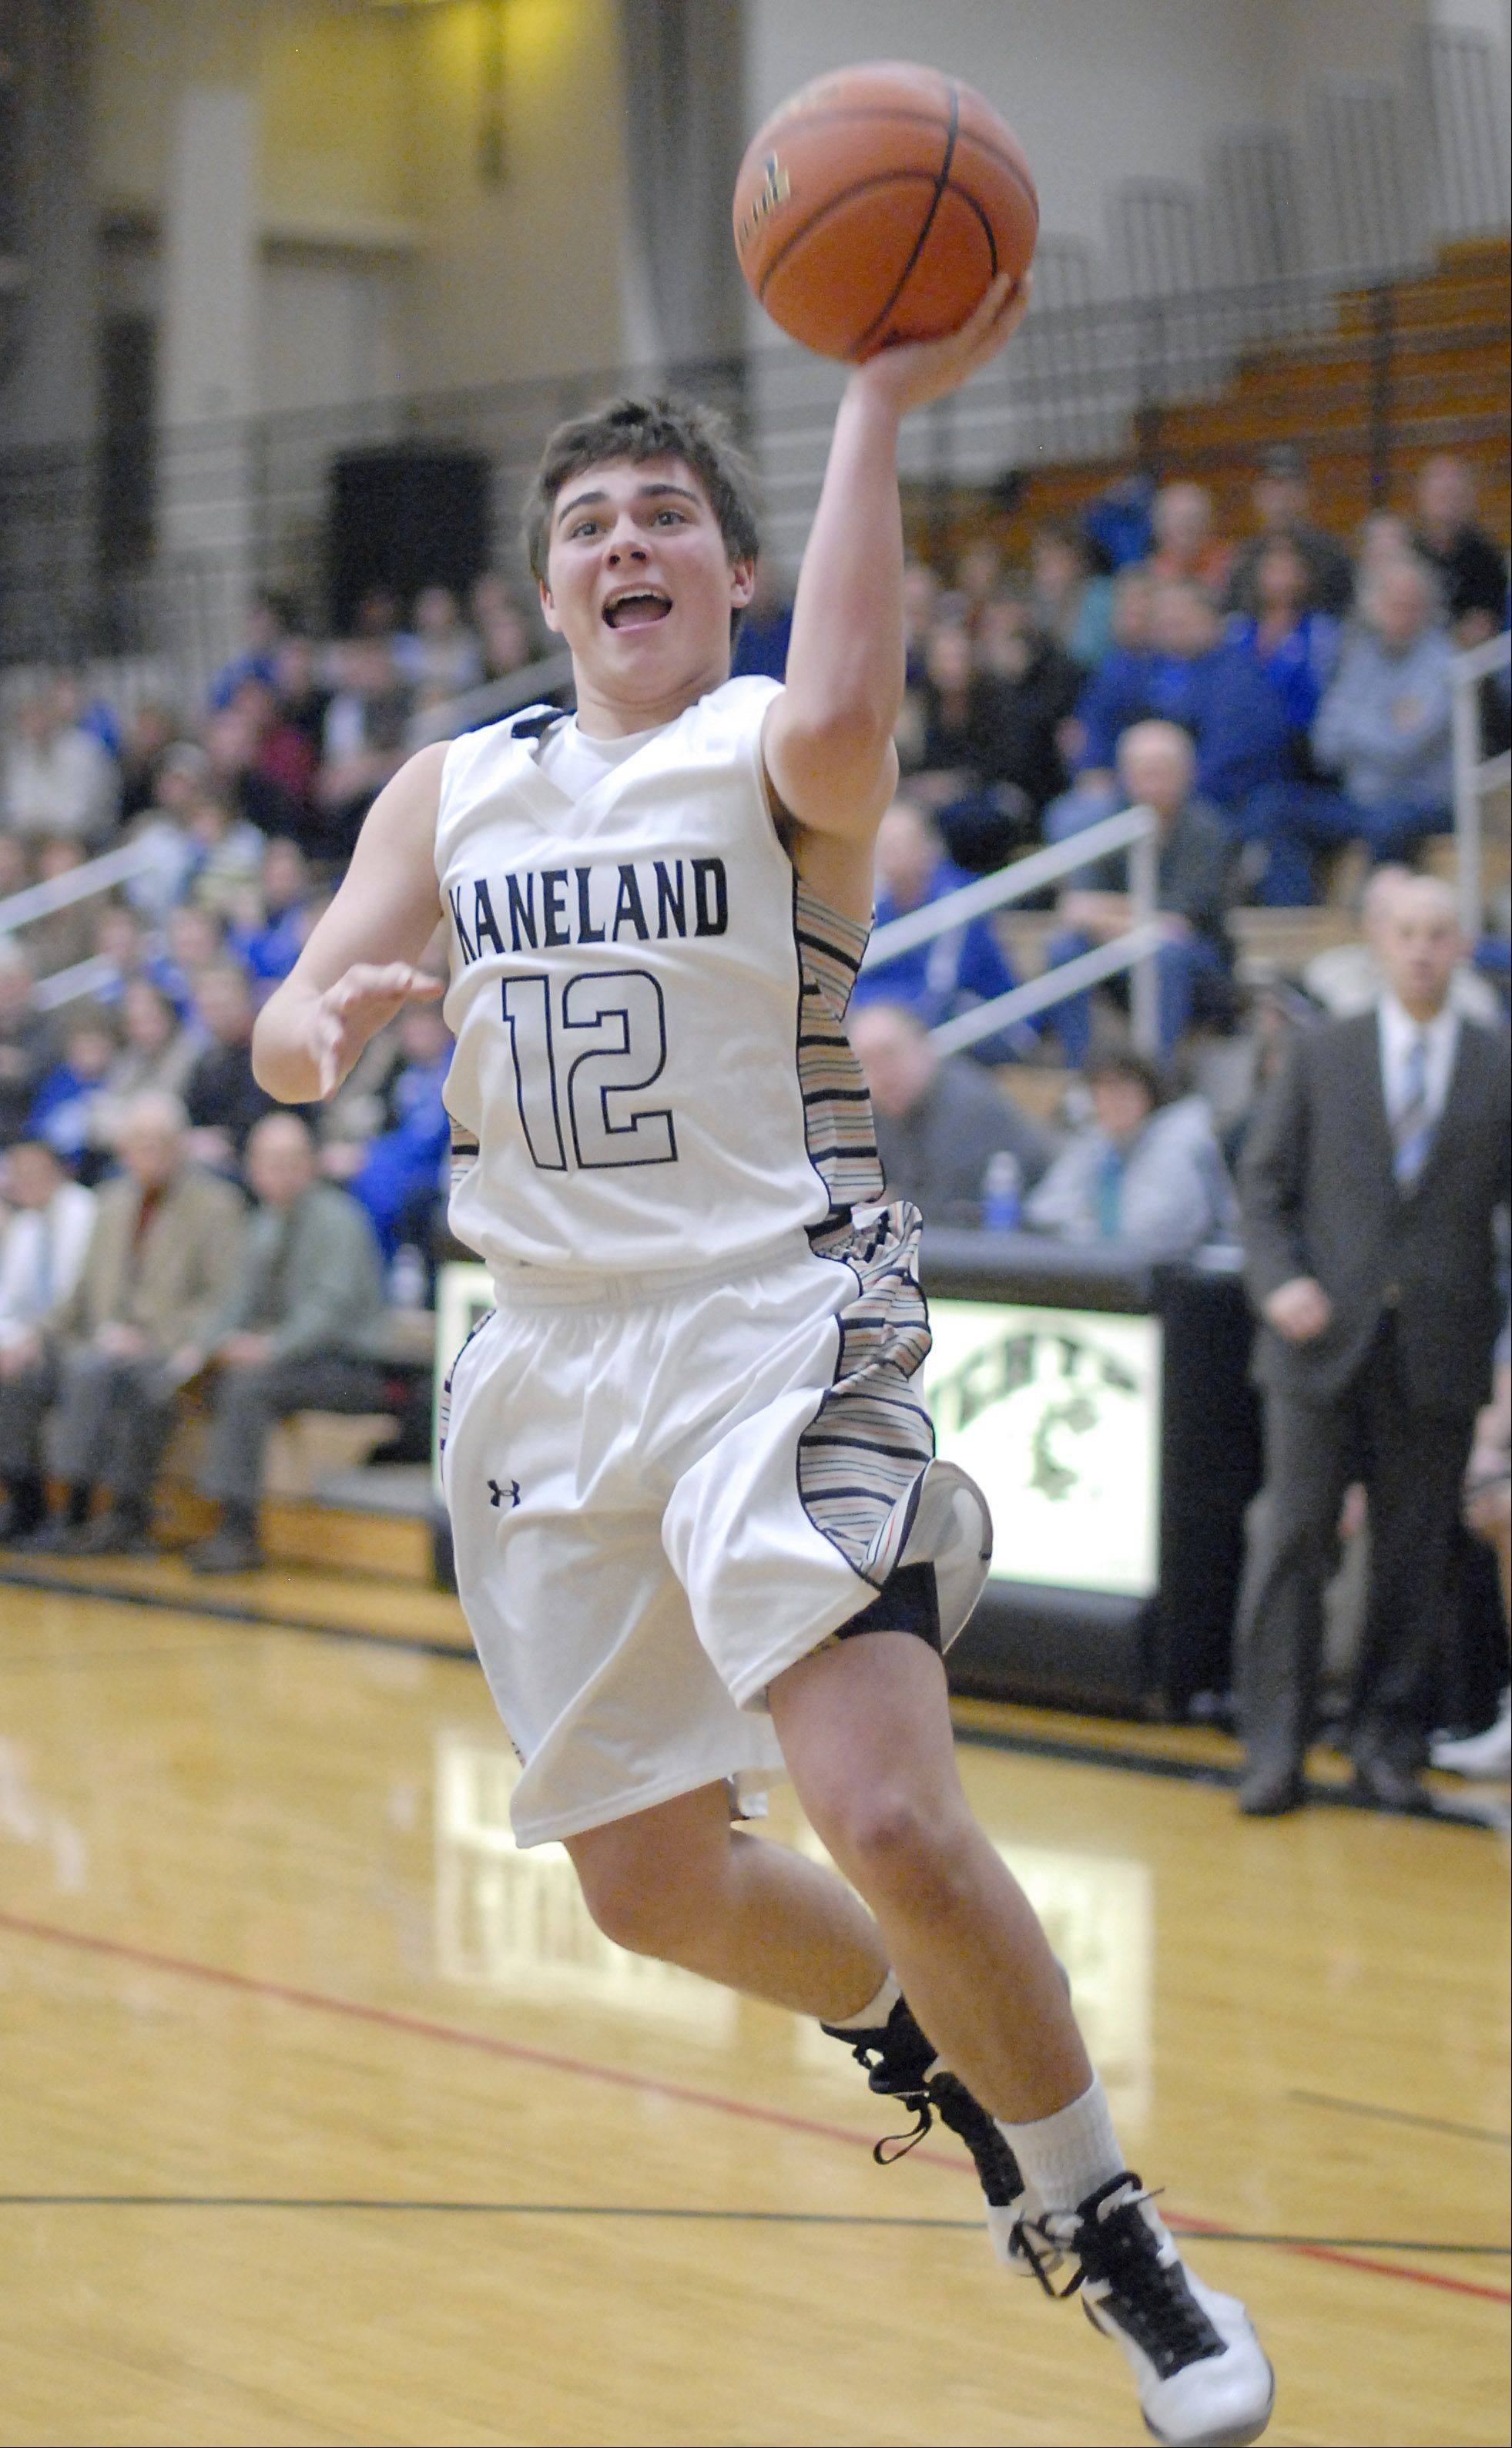 Kaneland's Connor Fedderly sinks a shot in the third quarter.